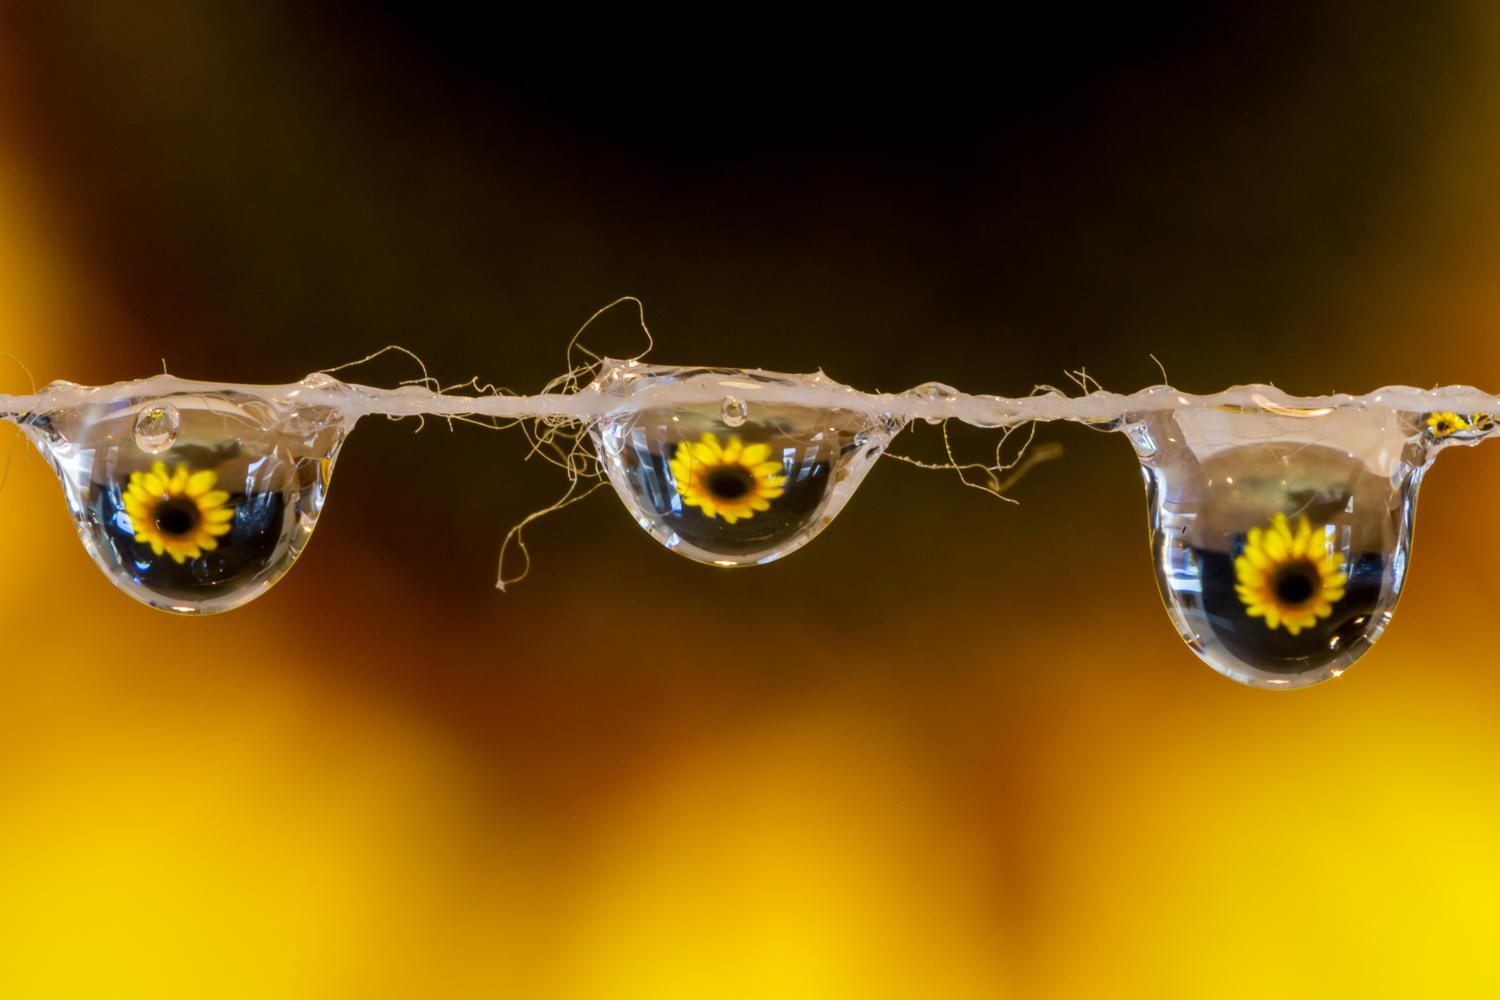 Image: Combining the Tamron 90mm macro with all three extension tubes (for a total of 68mm of extens...